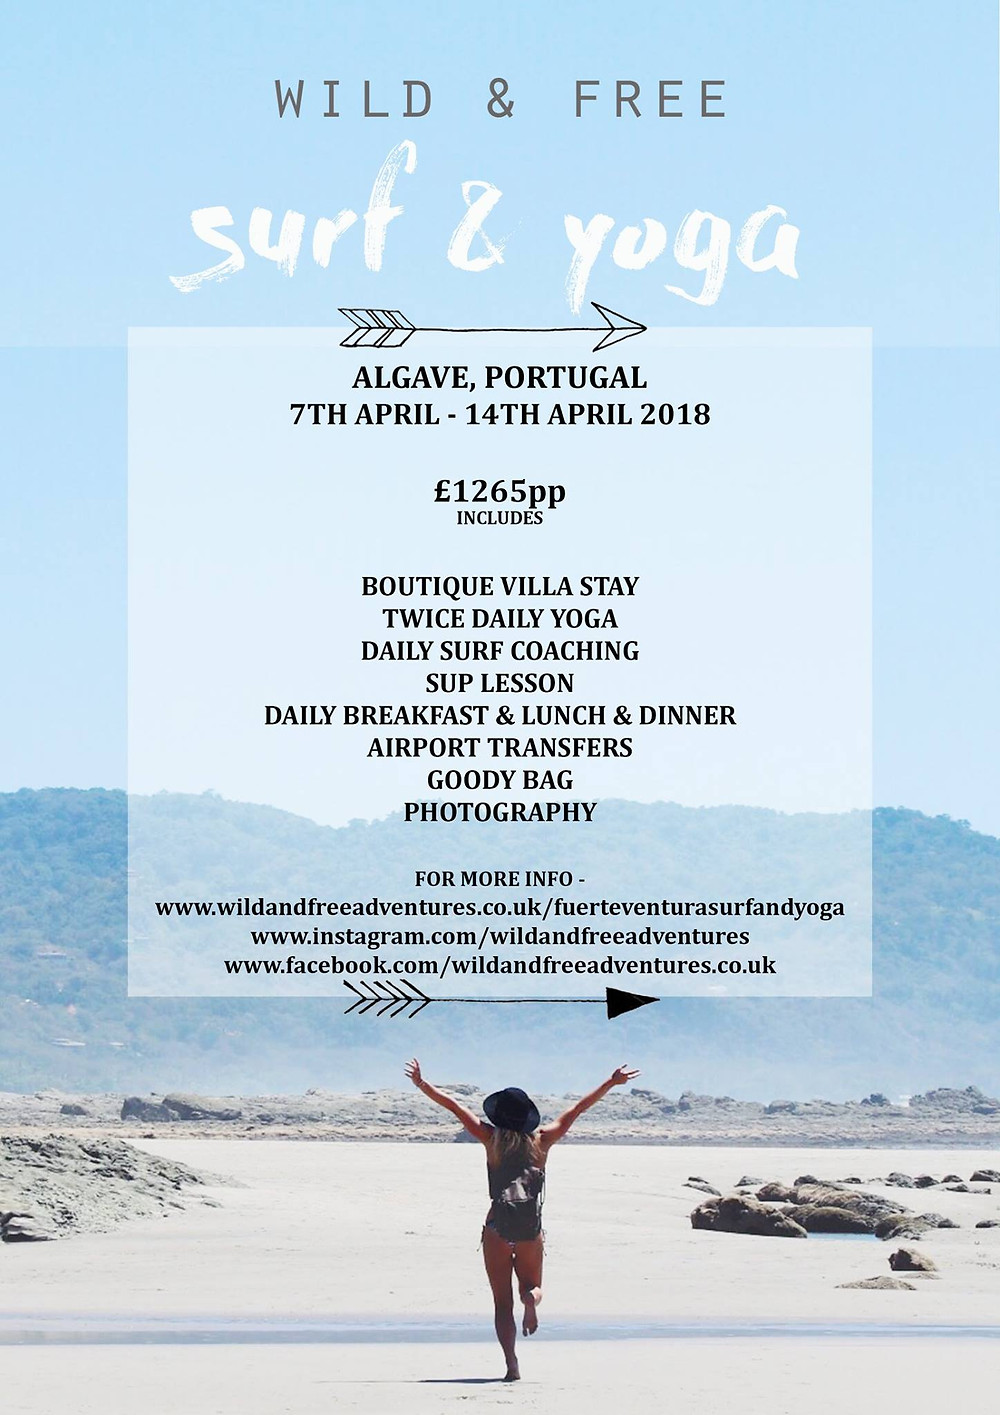 wild and free adventures Portugal retreat surf sup yoga escape to nature